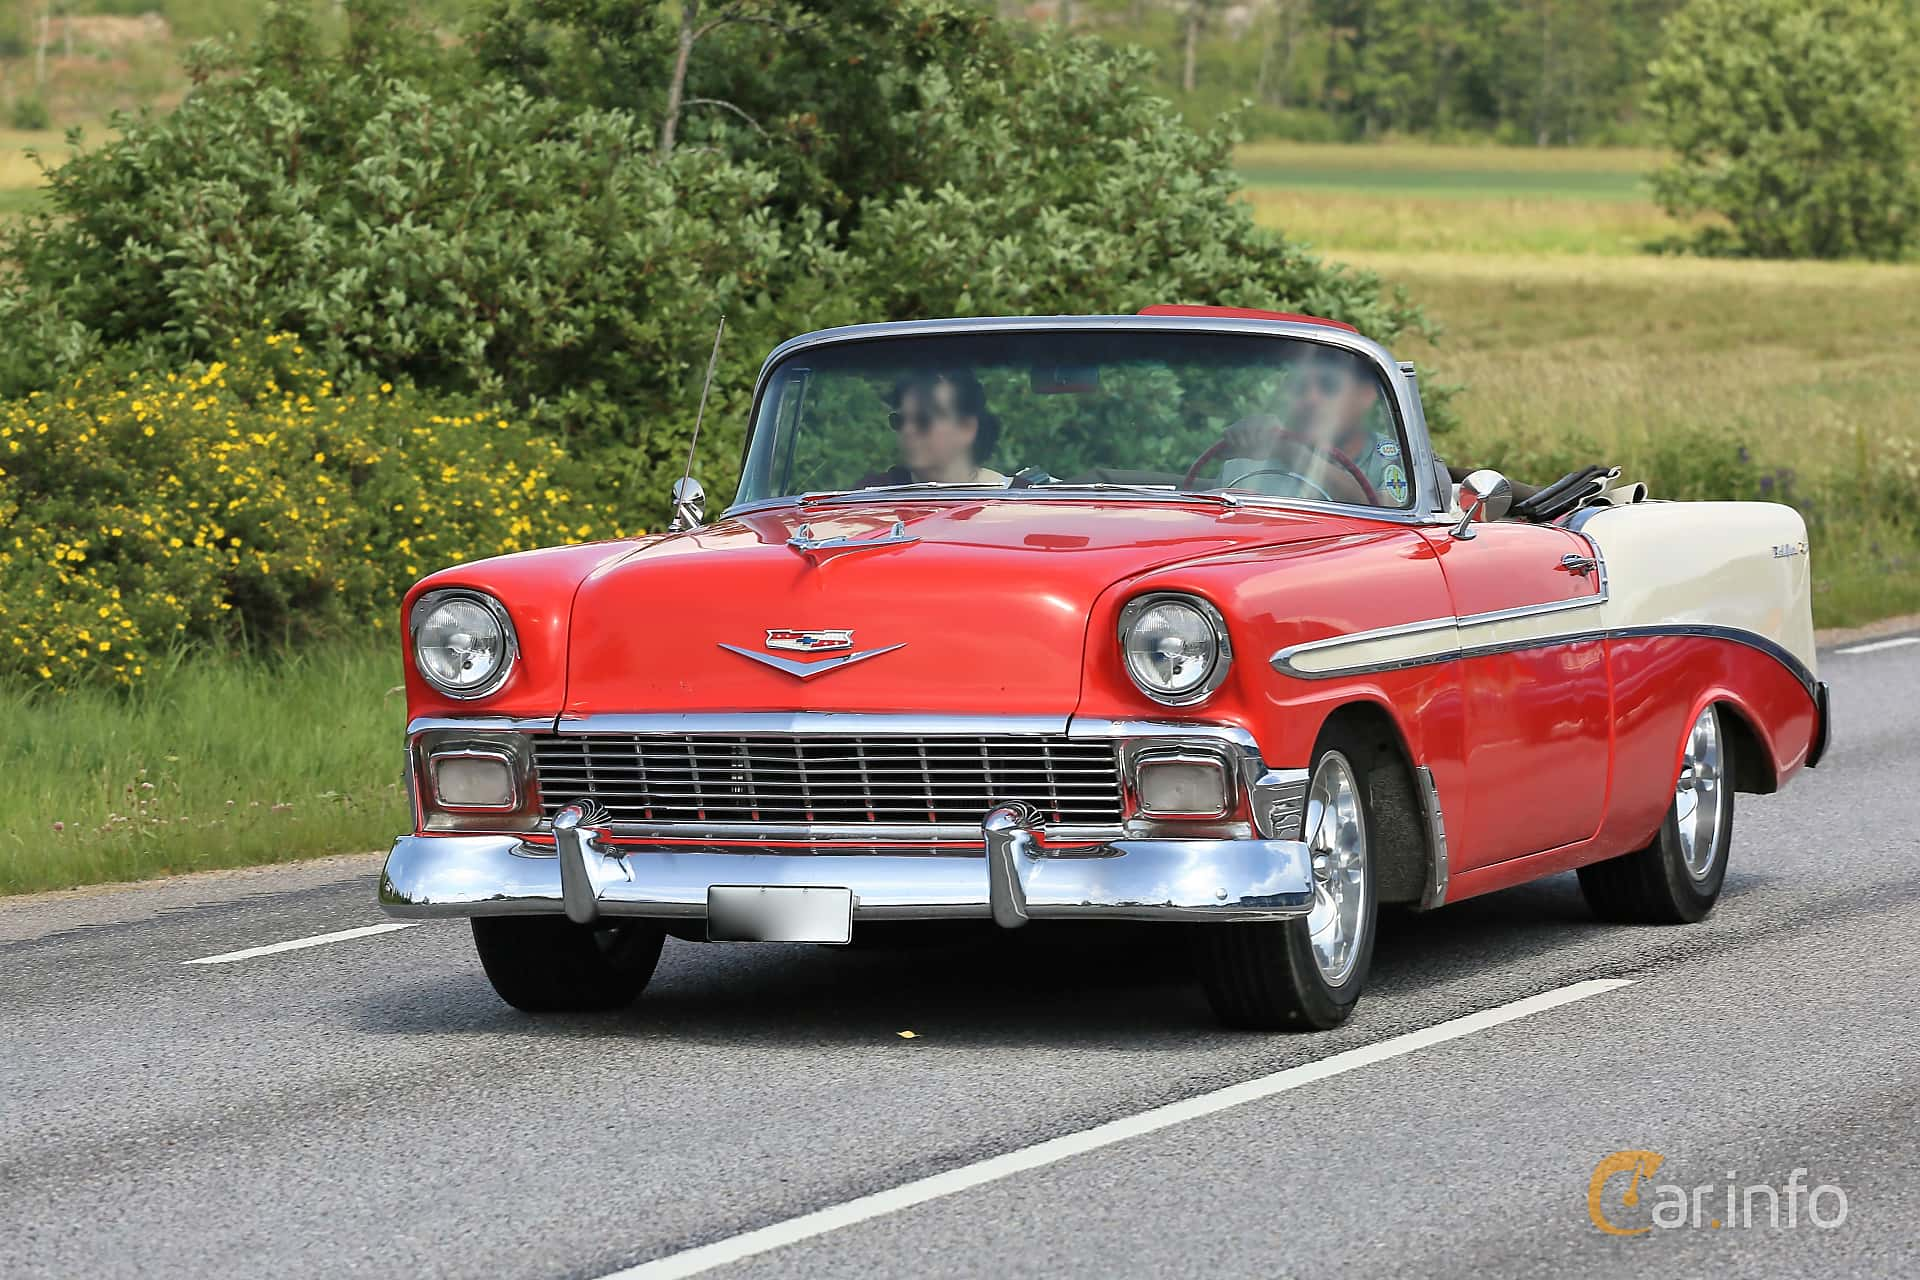 Chevrolet Bel Air Convertible 4.3 V8 Powerglide, 173hp, 1956